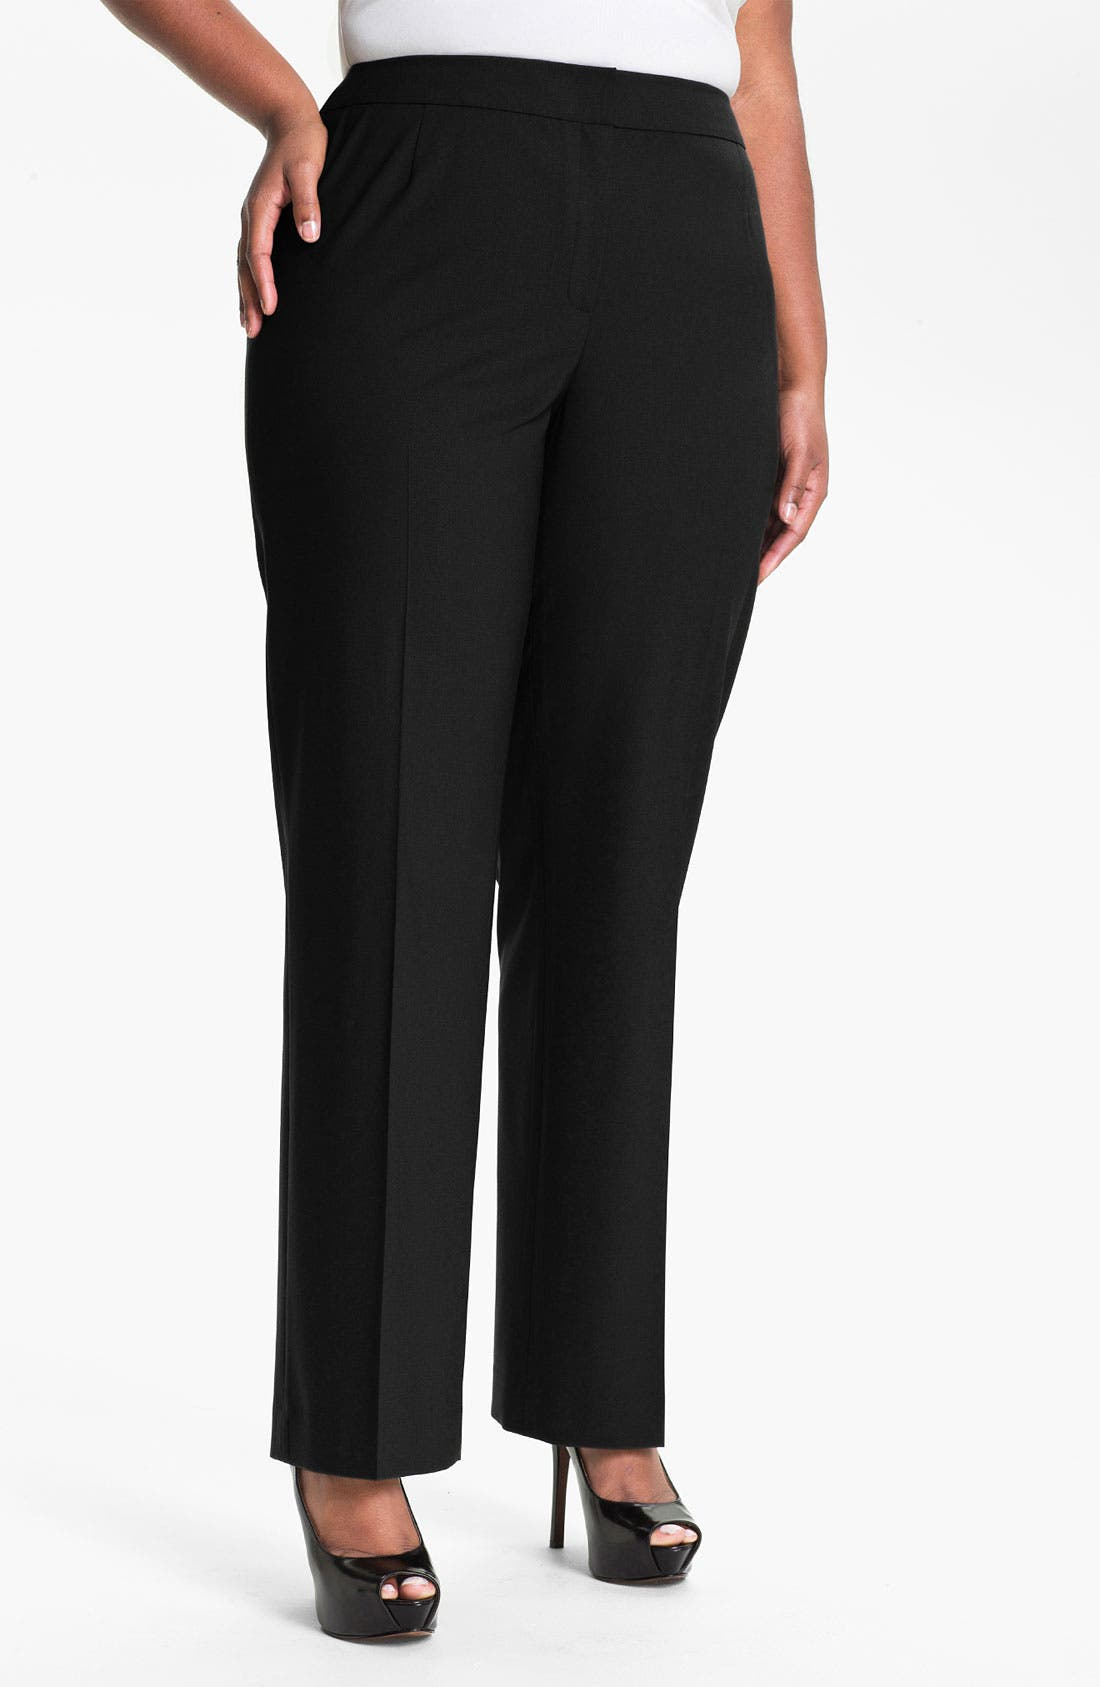 Alternate Image 1 Selected - Lafayette 148 New York 'Menswear' Trousers (Plus Size)